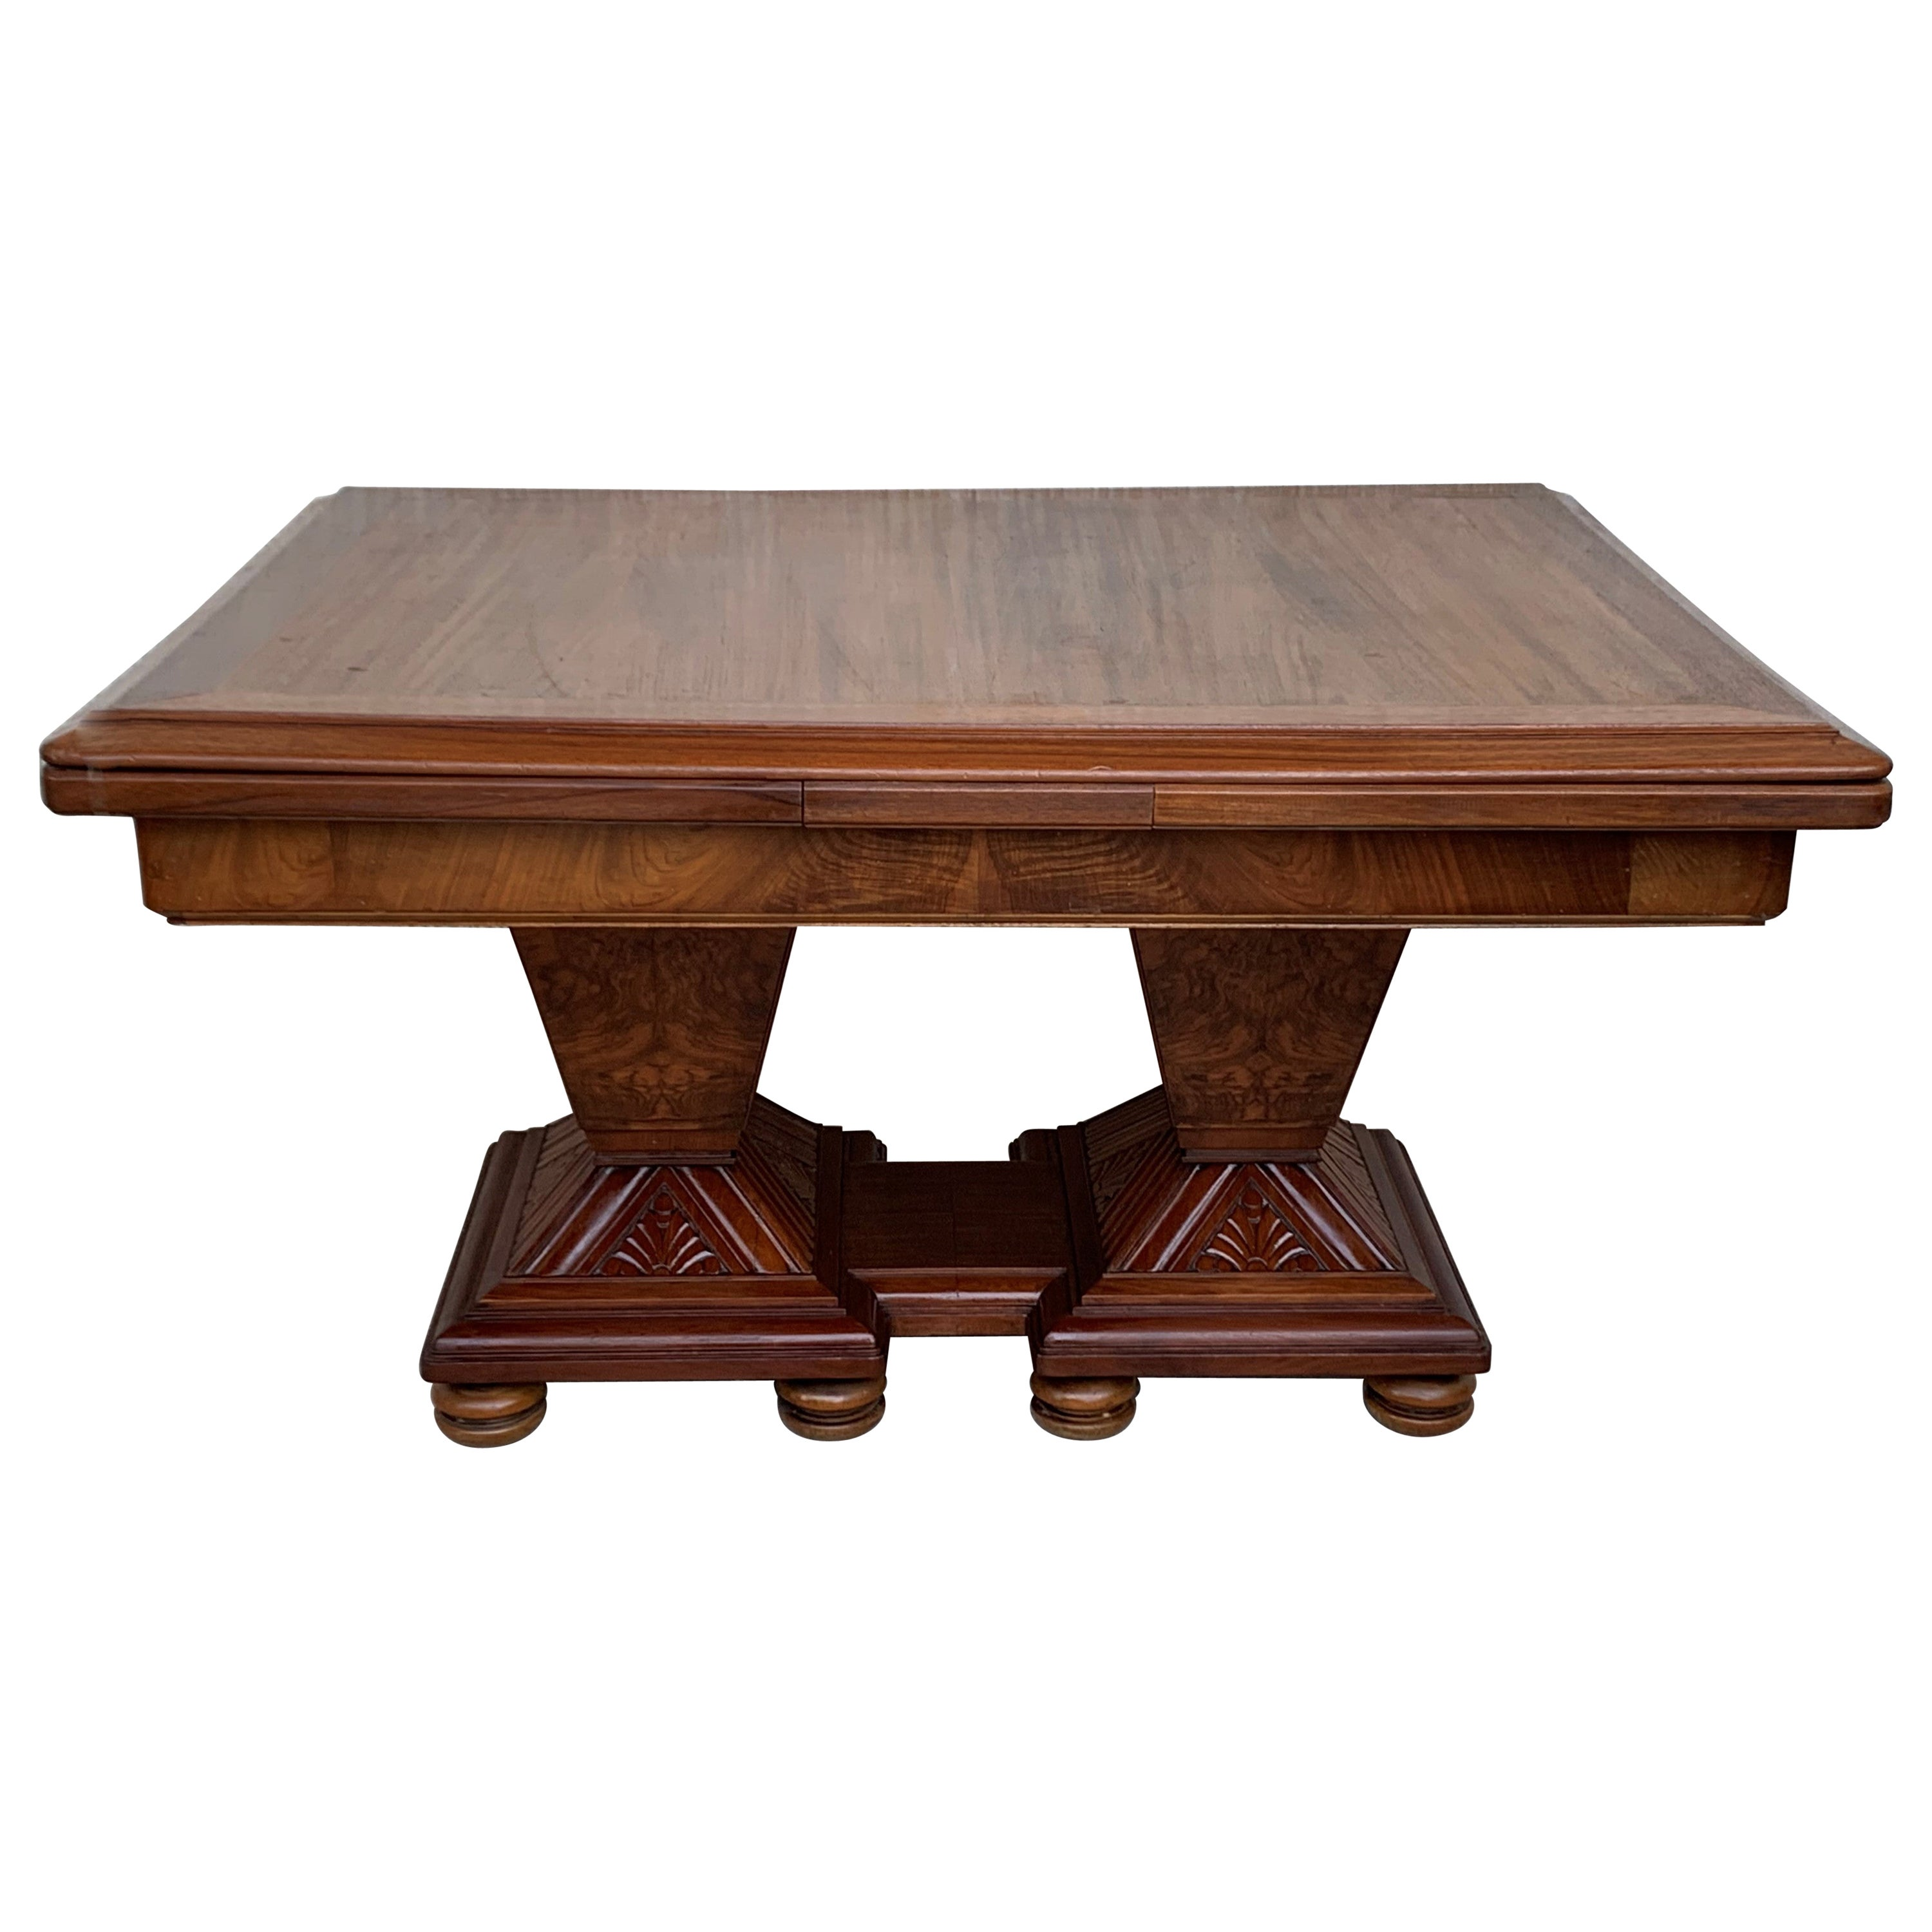 Square Extendable Art Deco Dining Table with Two-Burl Walnut Pedestals